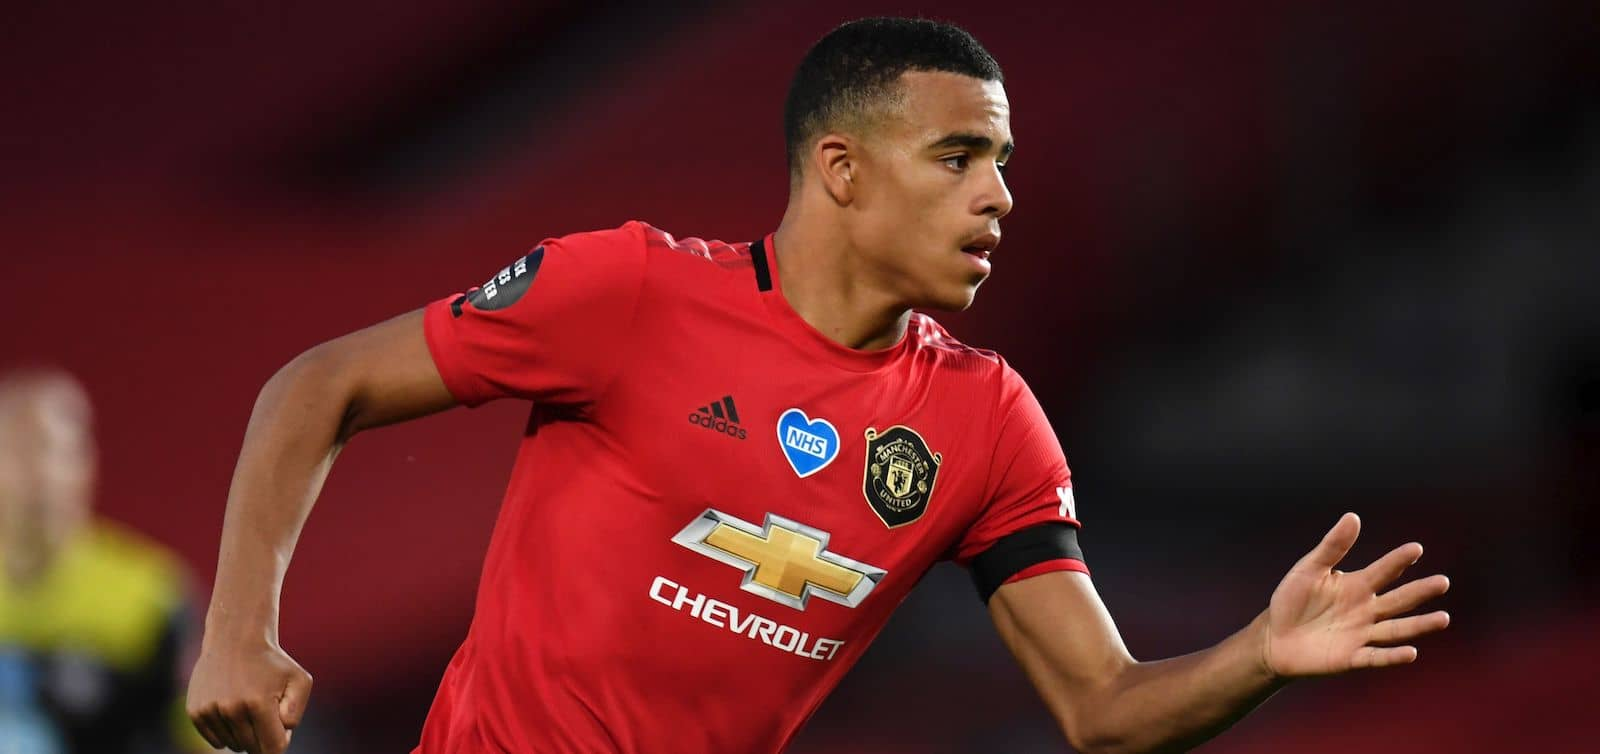 Mason Greenwood is being targetted, says Ole Gunnar Solskjaer